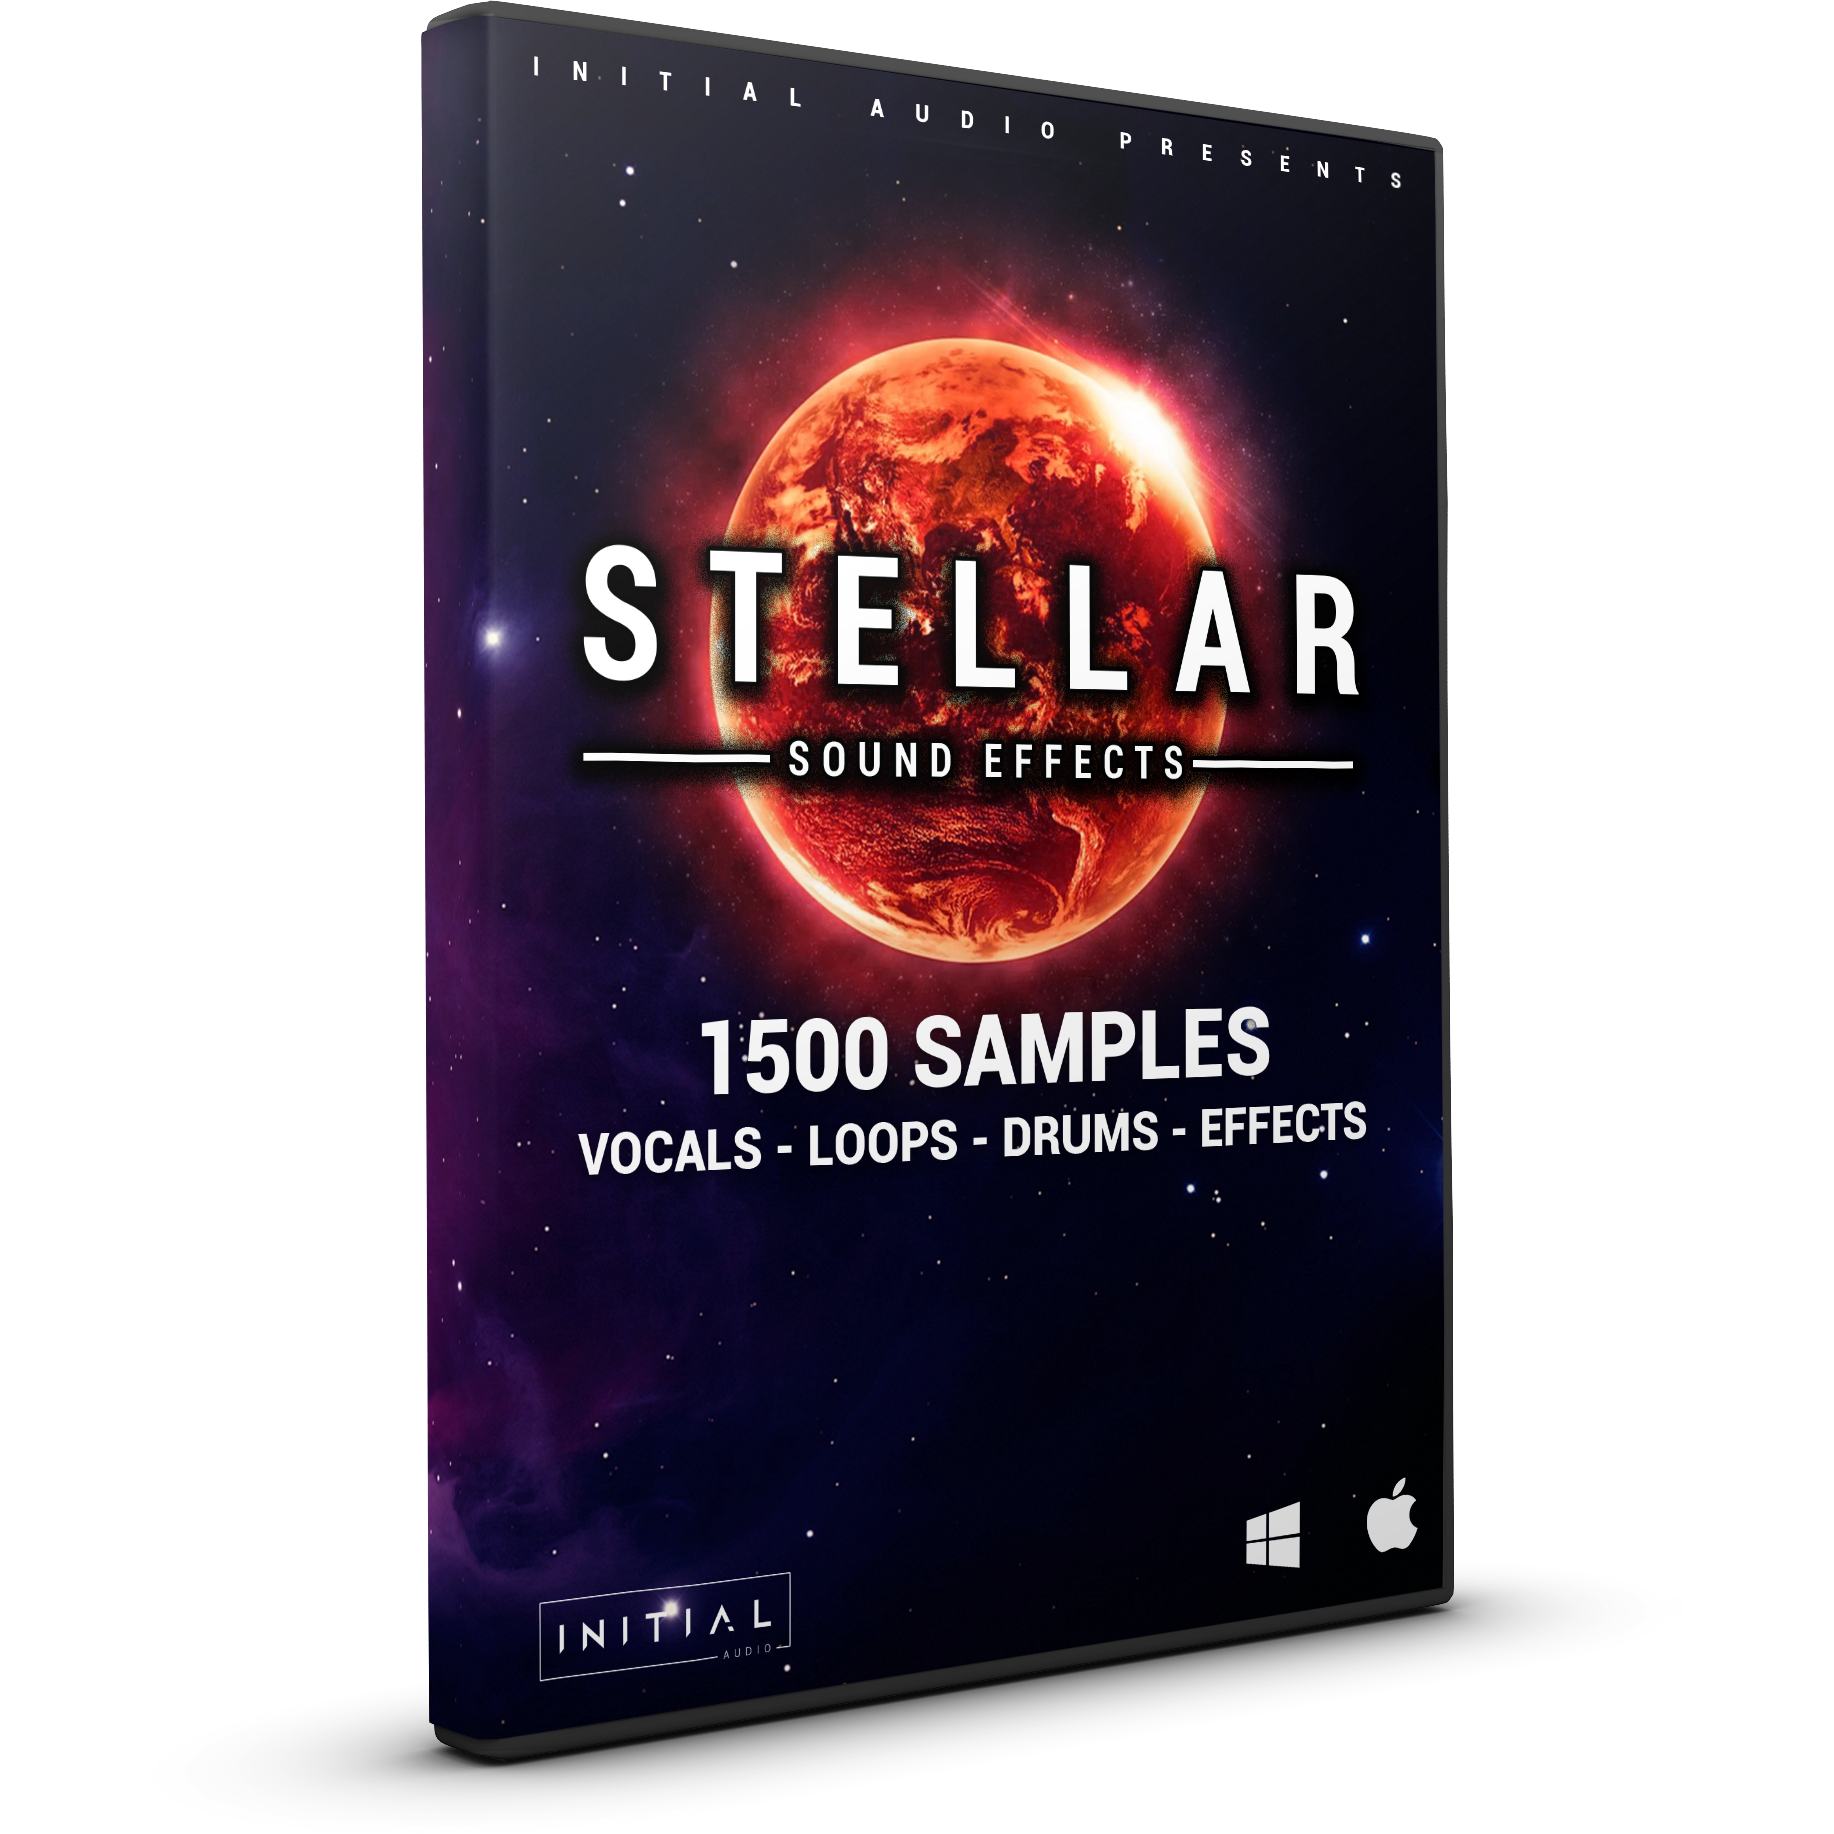 ac6c405933c STELLAR - SOUND EFFECTS - INITIAL AUDIO